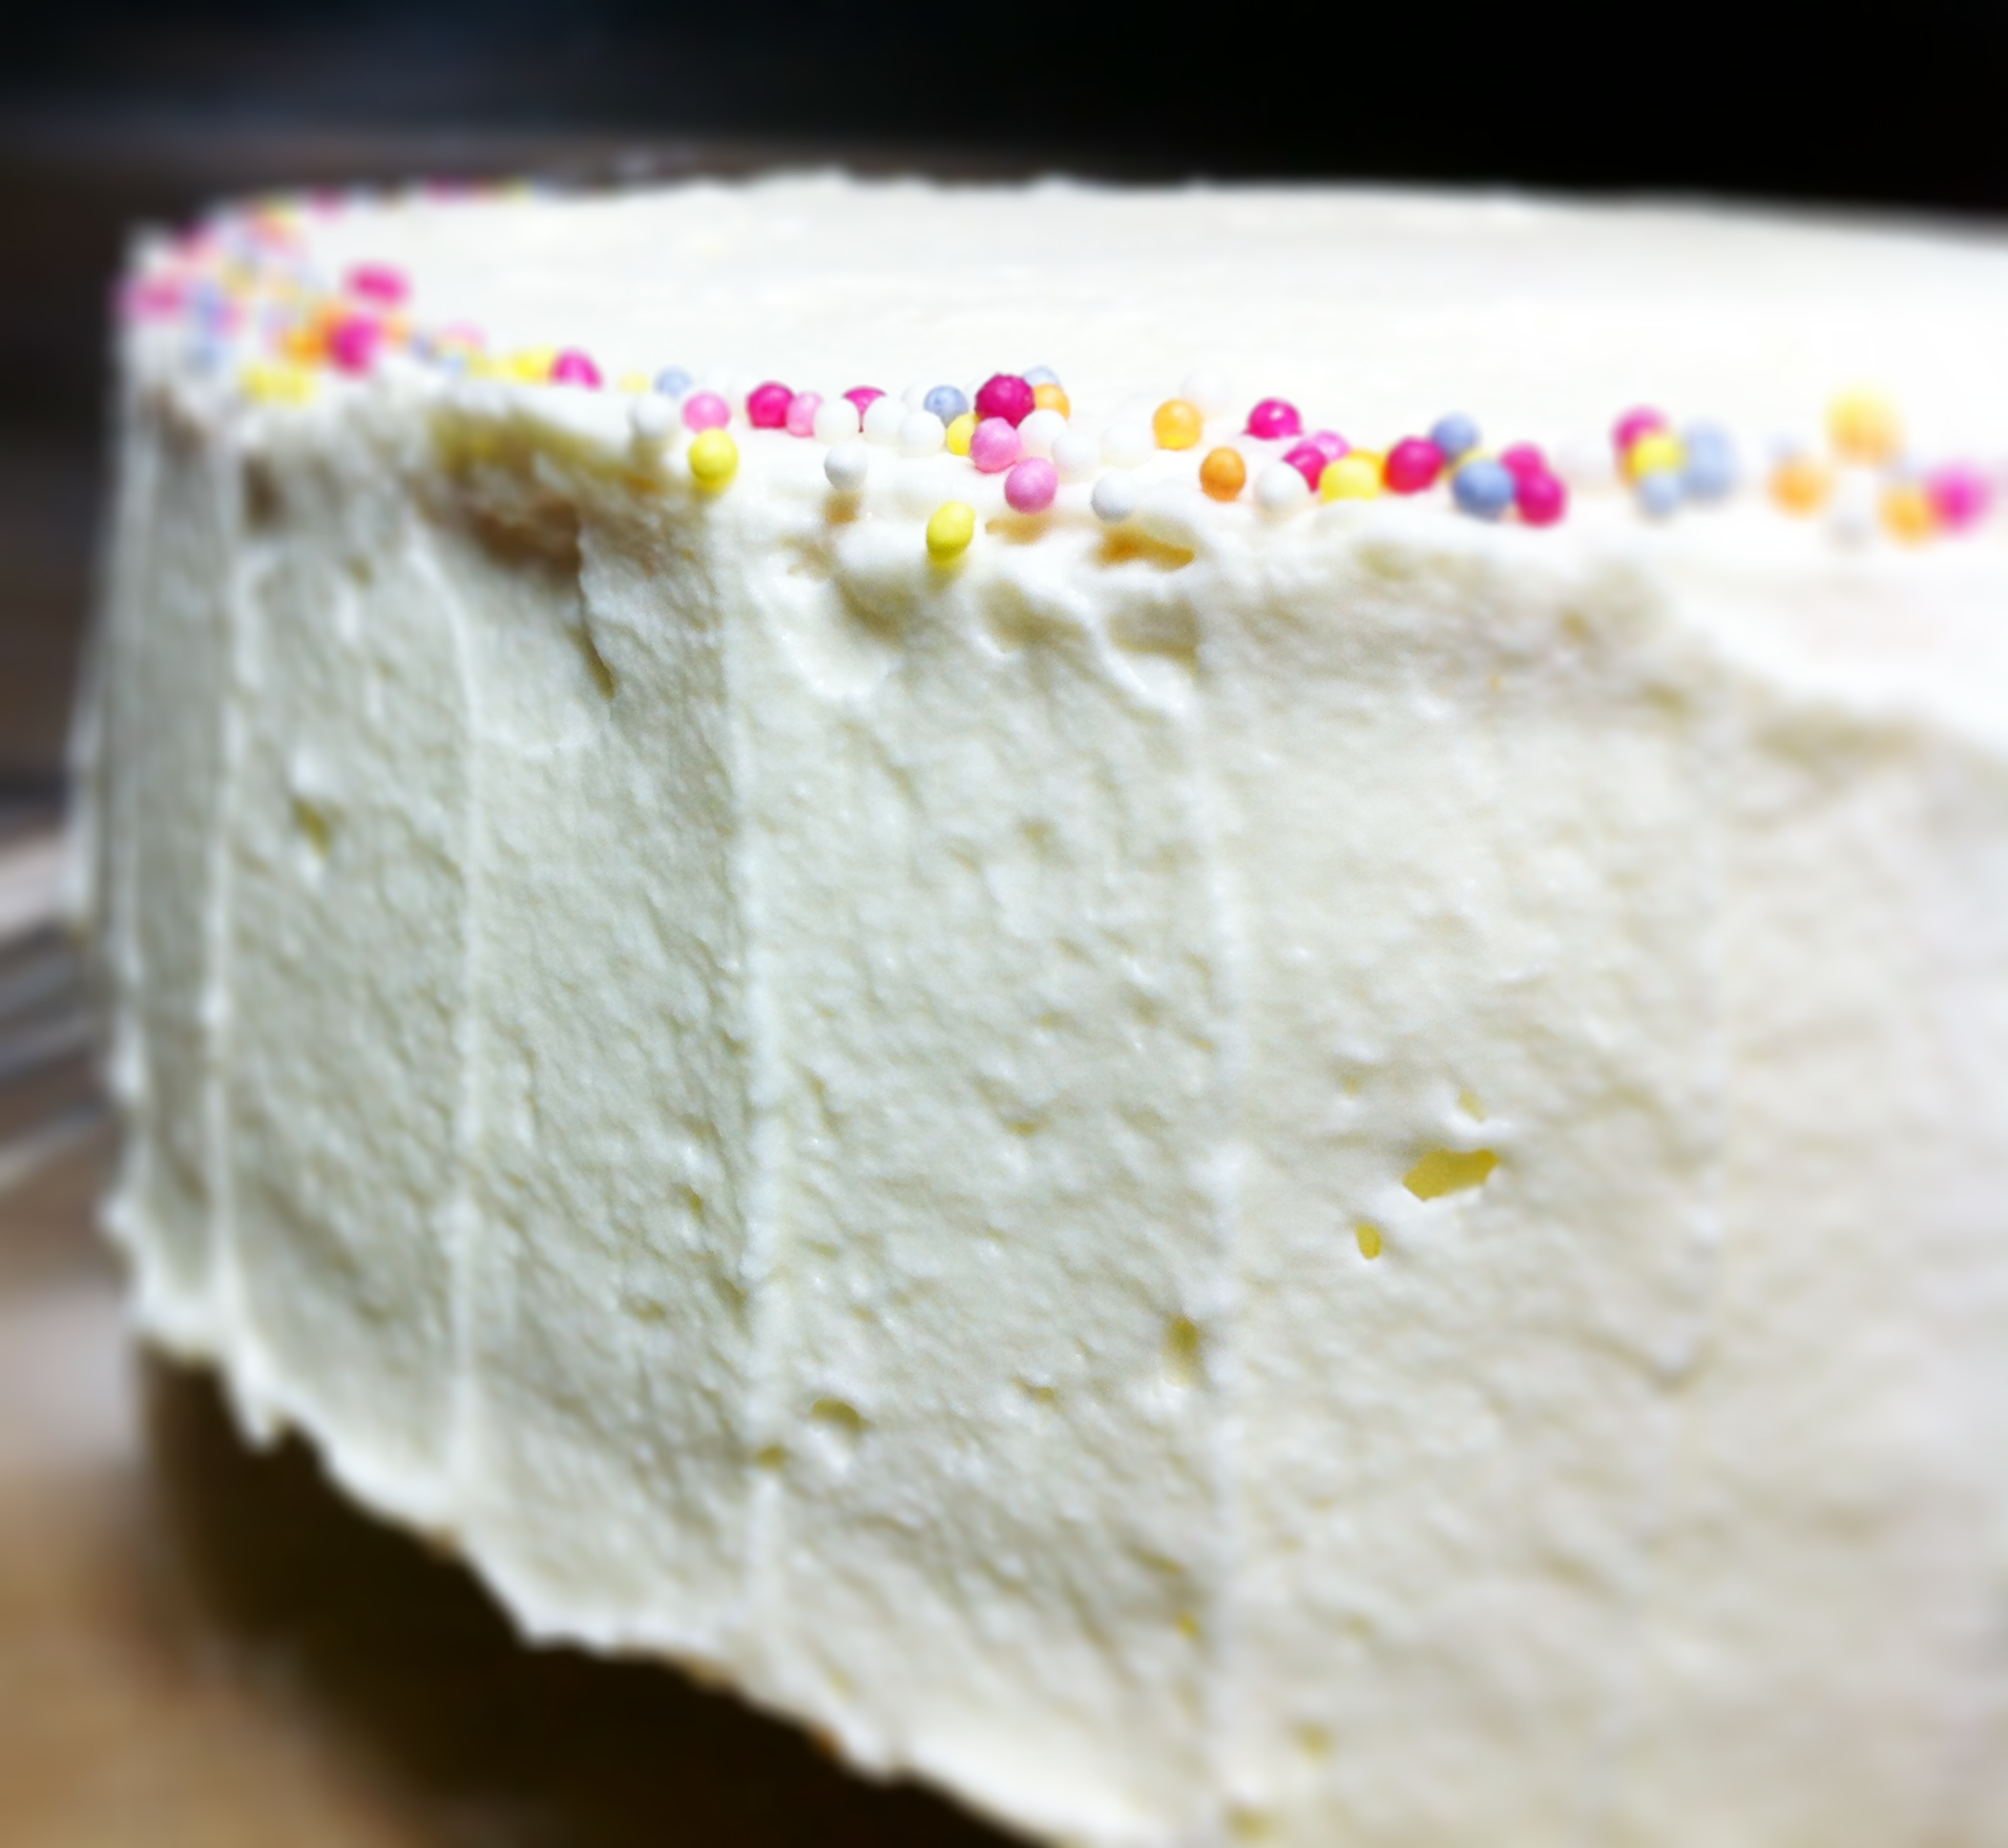 East meets West: A Japanese cheesecake and sponge layered ...